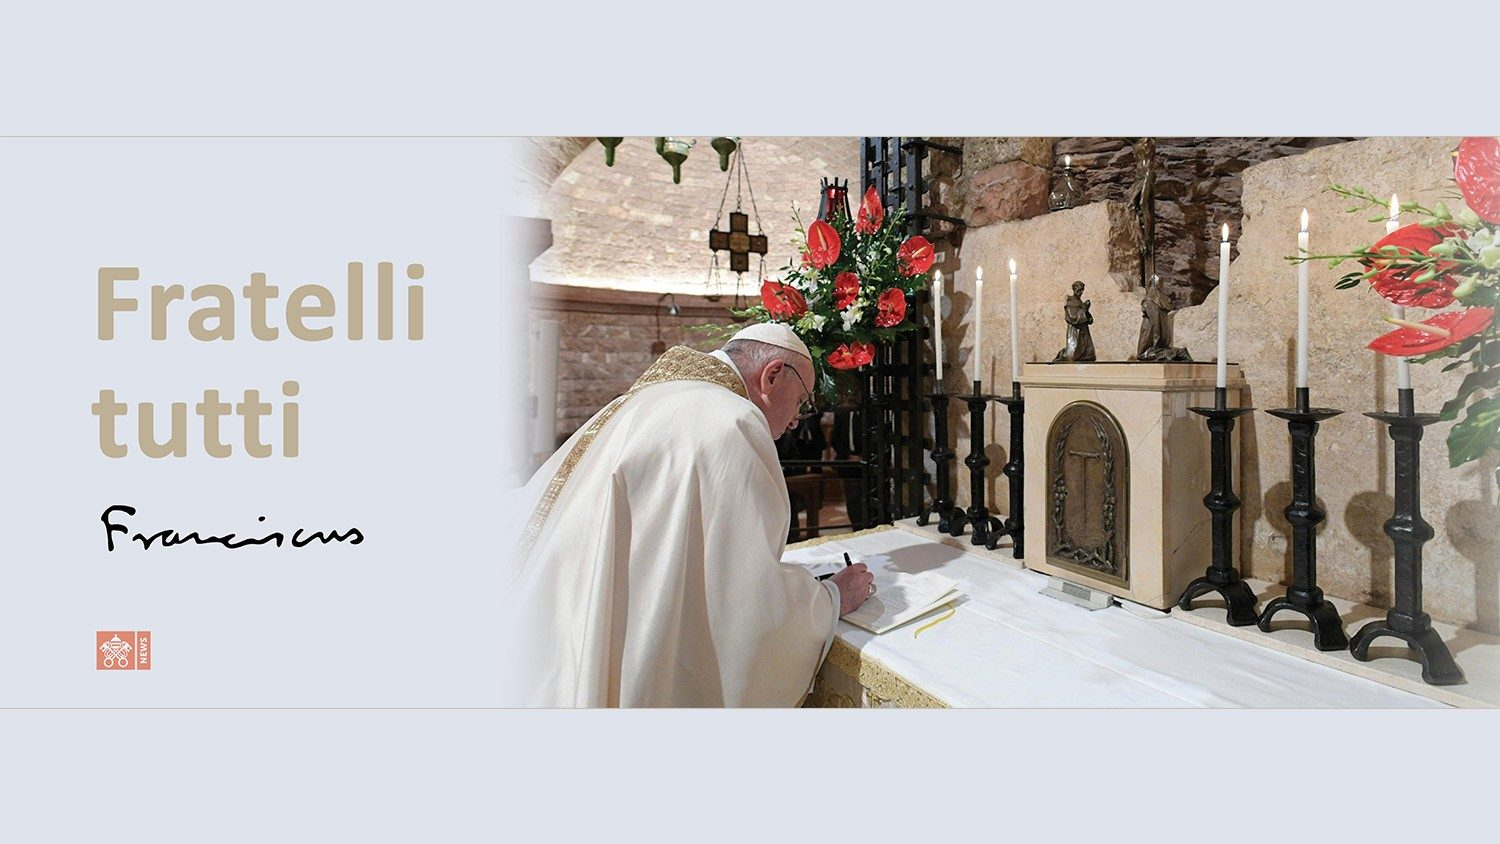 """Bishops of Australia, US welcome new Encyclical """"Fratelli tutti"""" - Vatican News"""